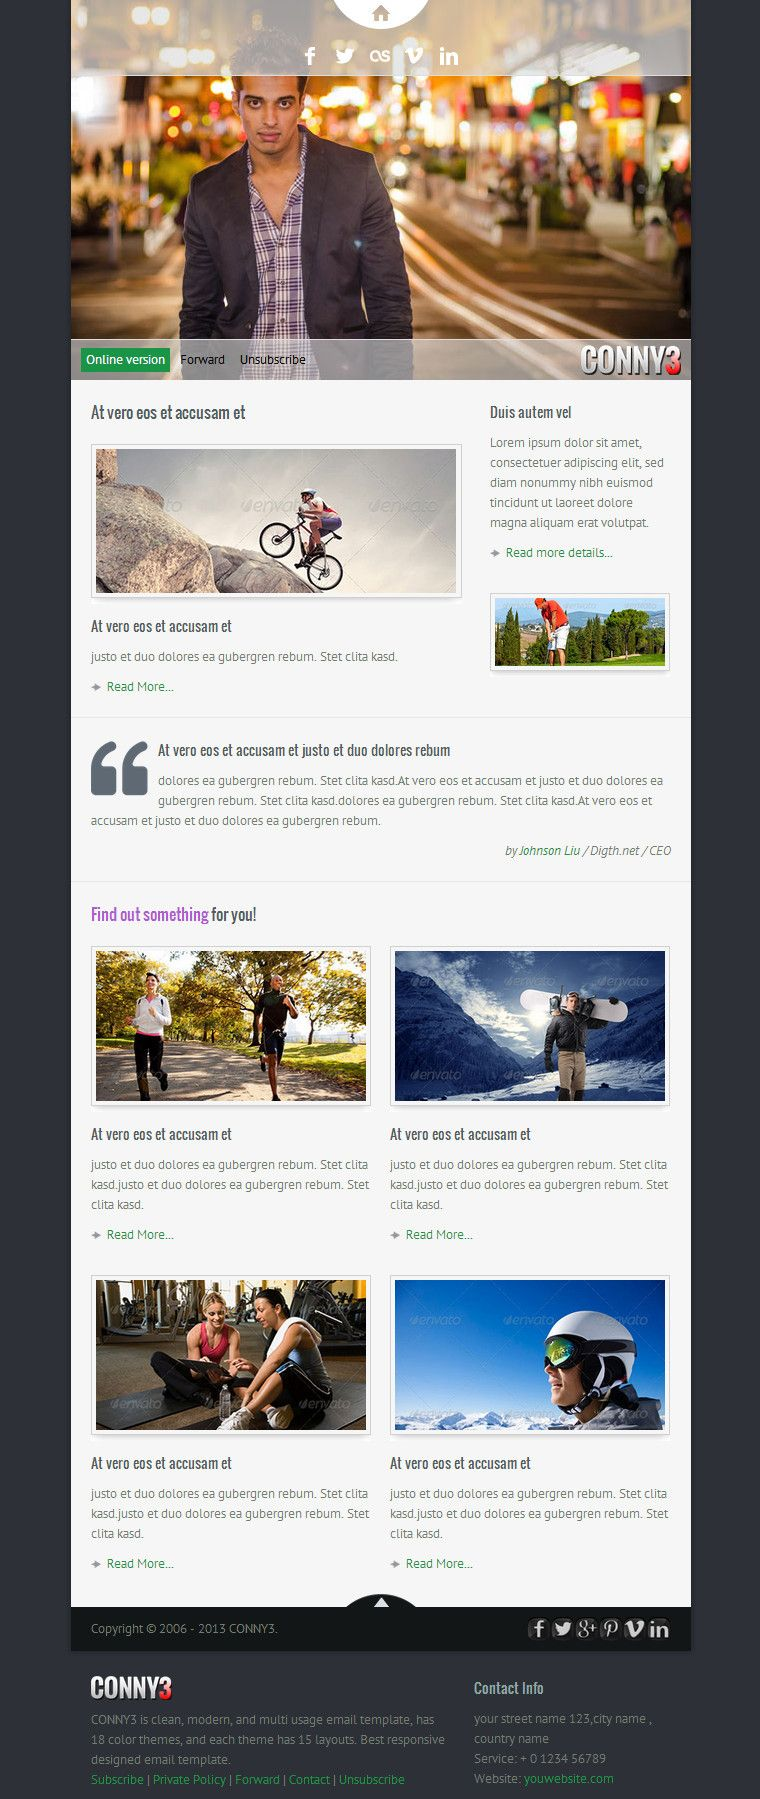 CONNY3 Responsive Email With Template Builder